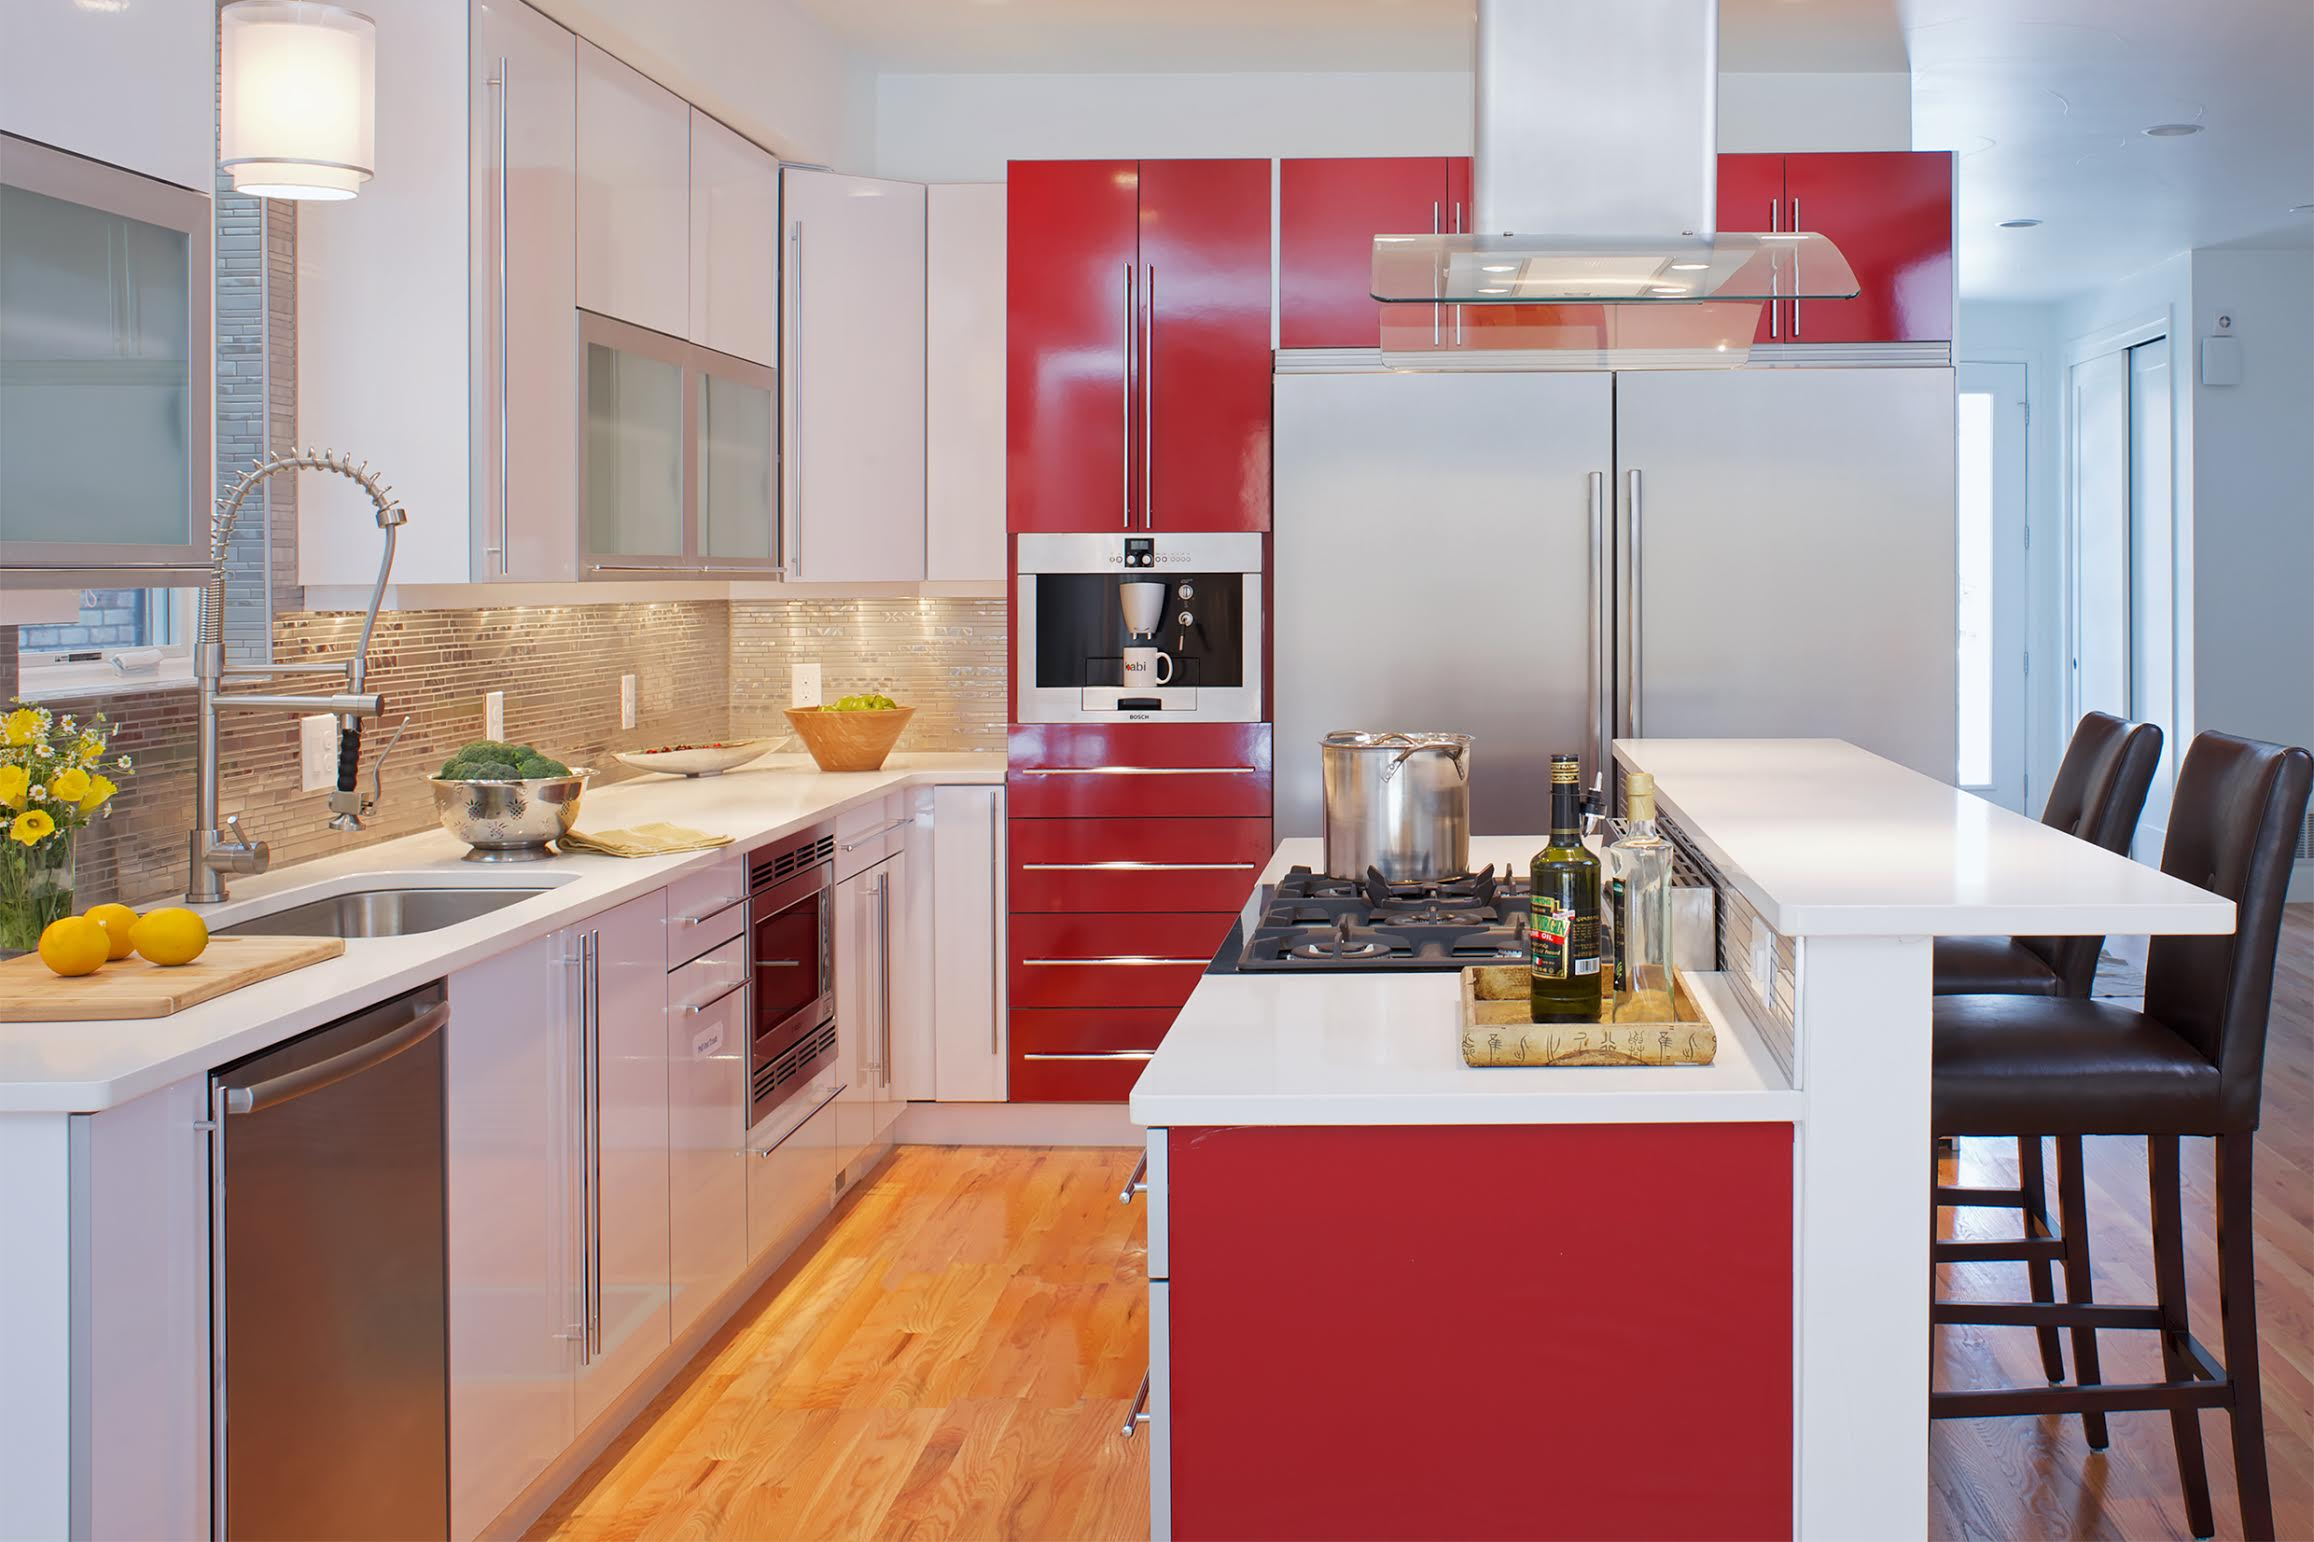 red kitchen edited.jpg